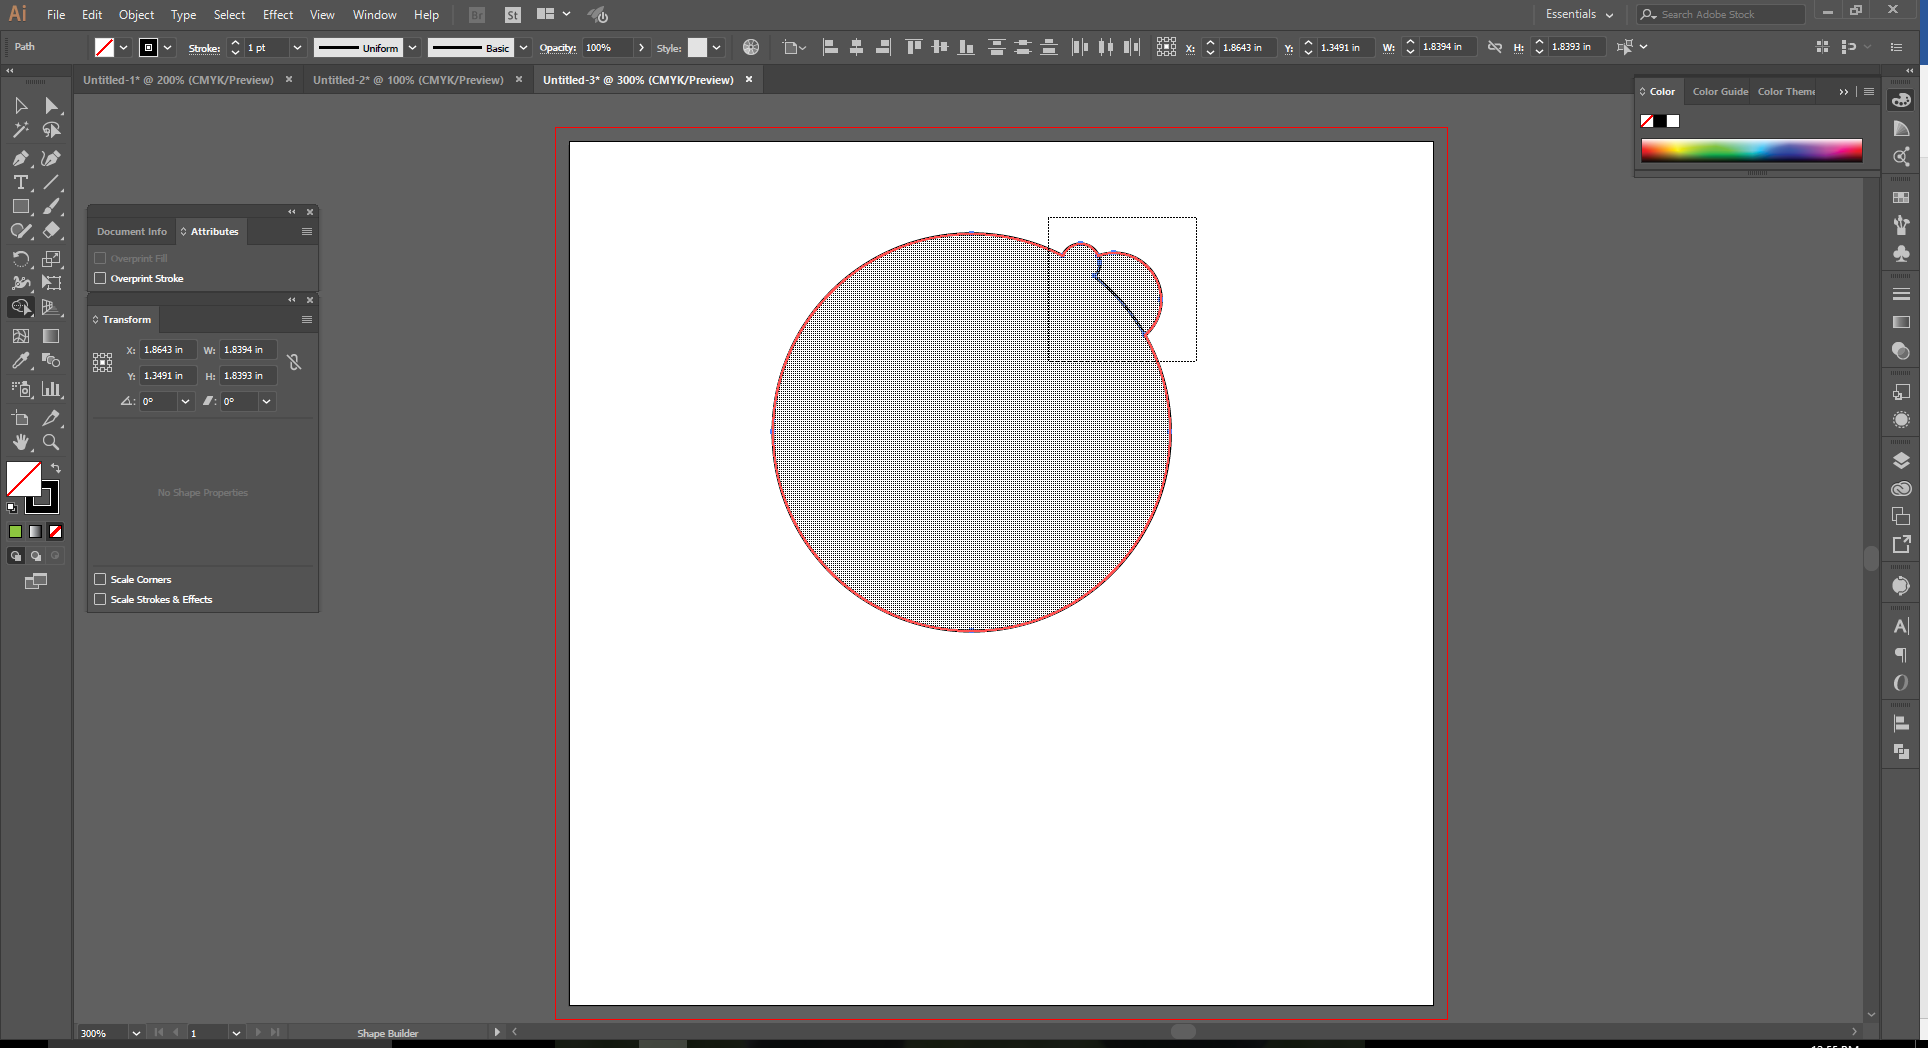 How to Use the Shape Builder Tool in Adobe Illustrator - 9